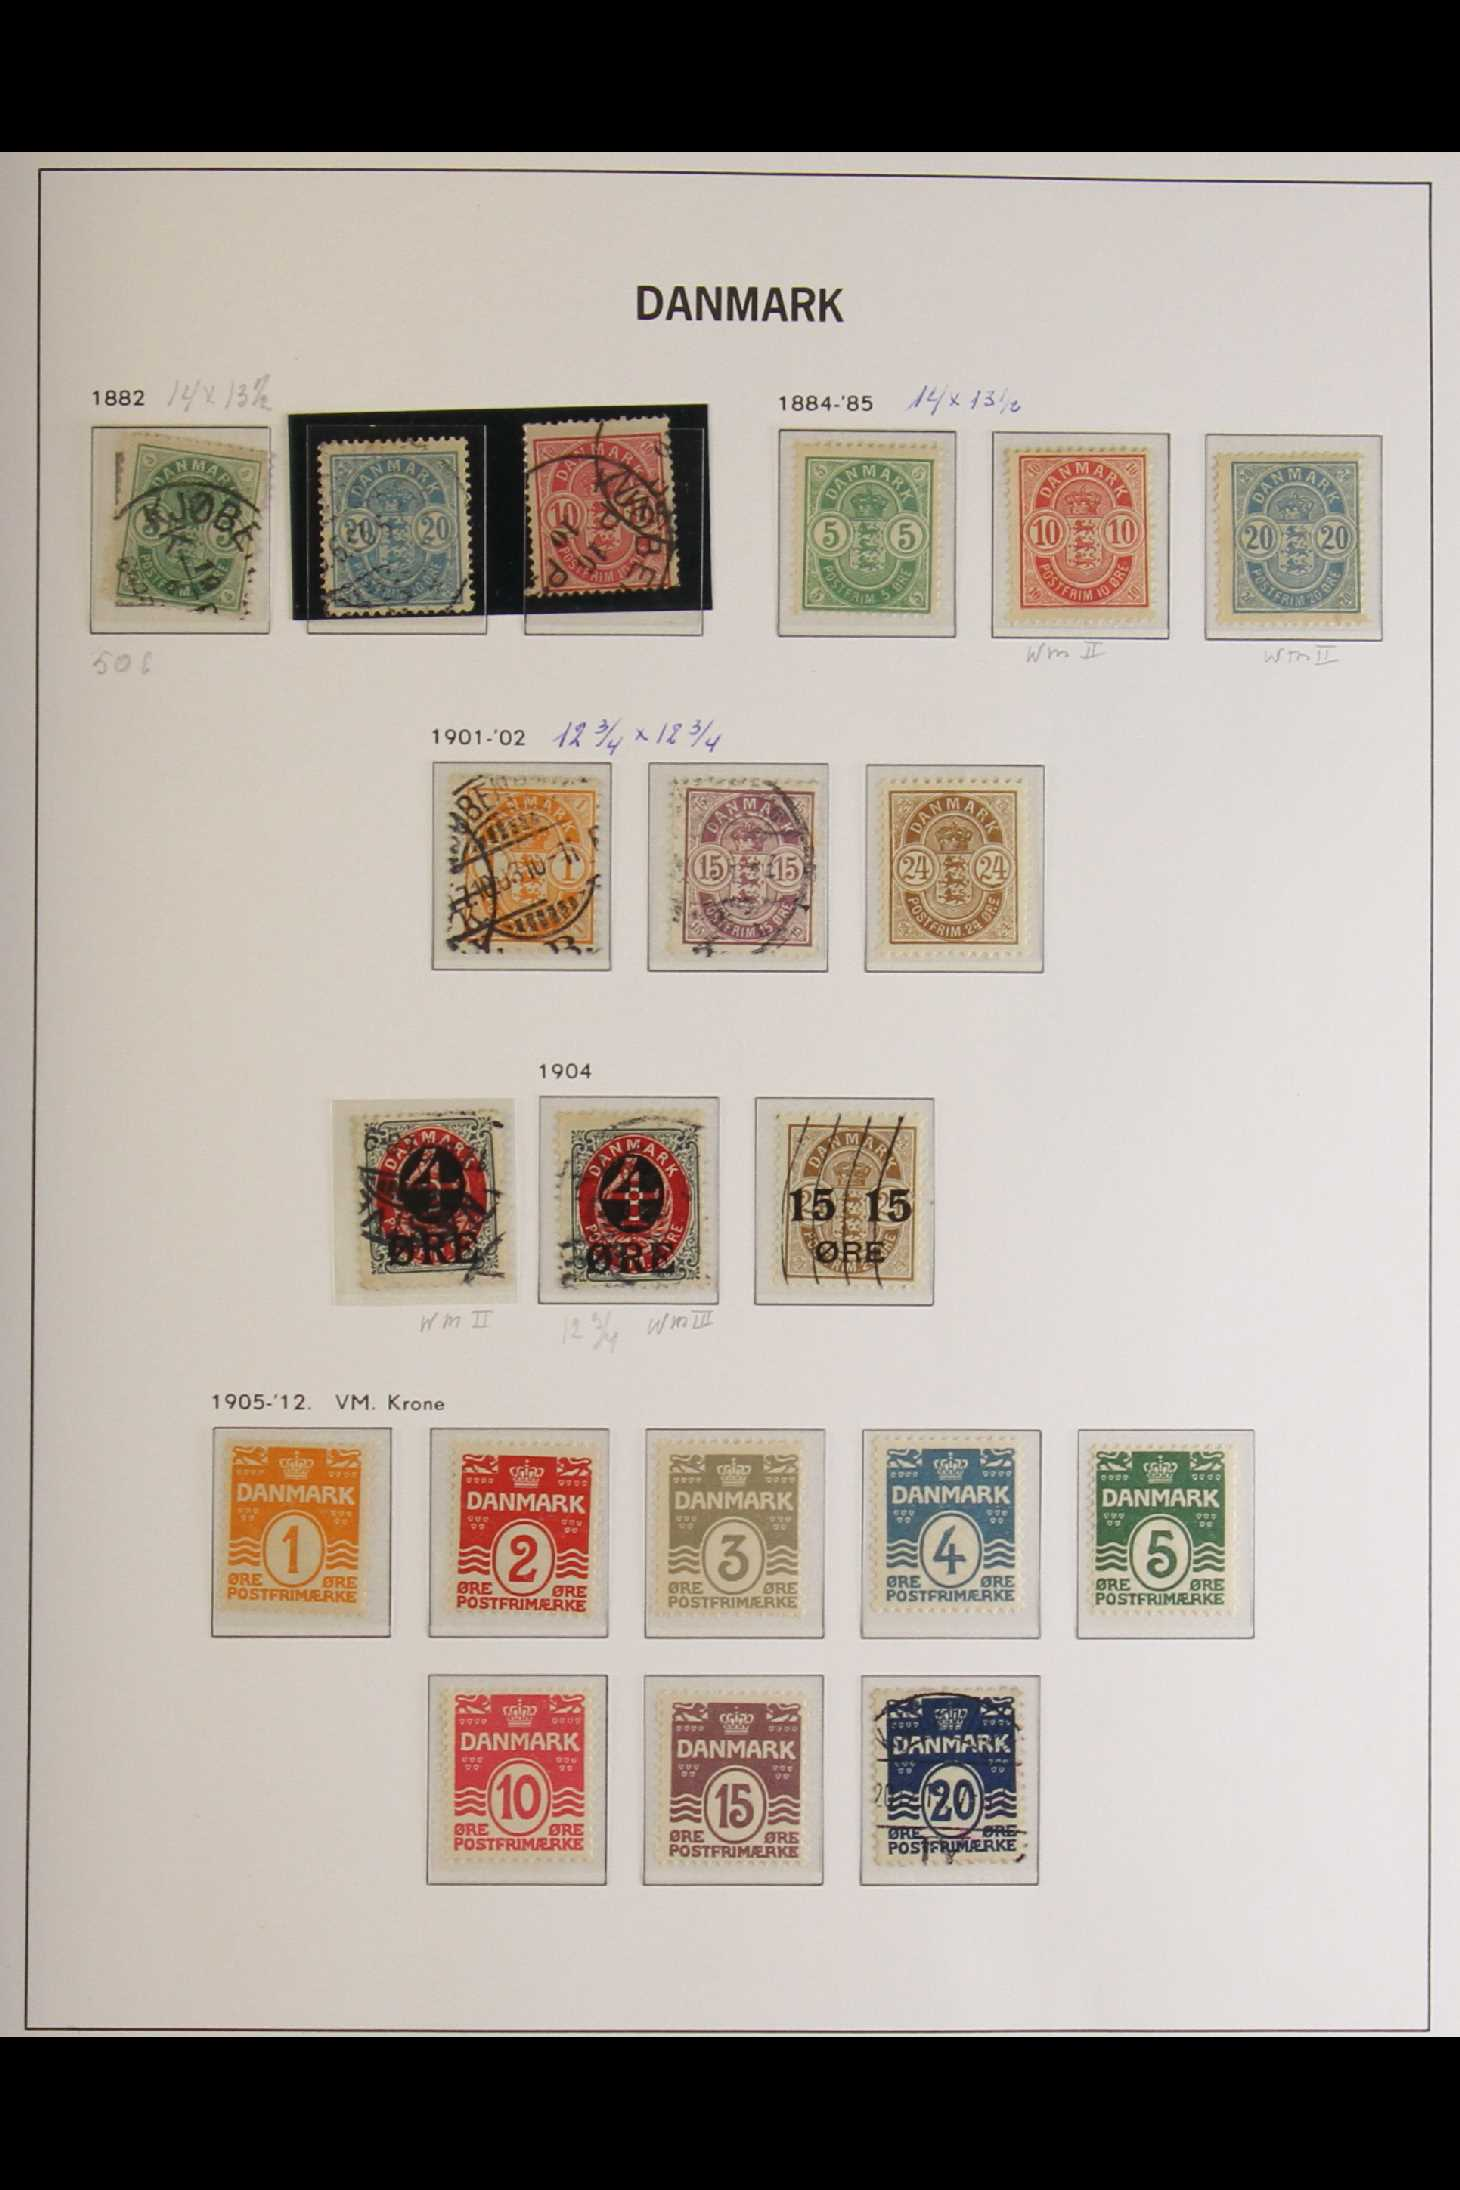 DENMARK 1882-1969 mint and used collection in an album incl. 1882 (small corner figures) 5 ore and